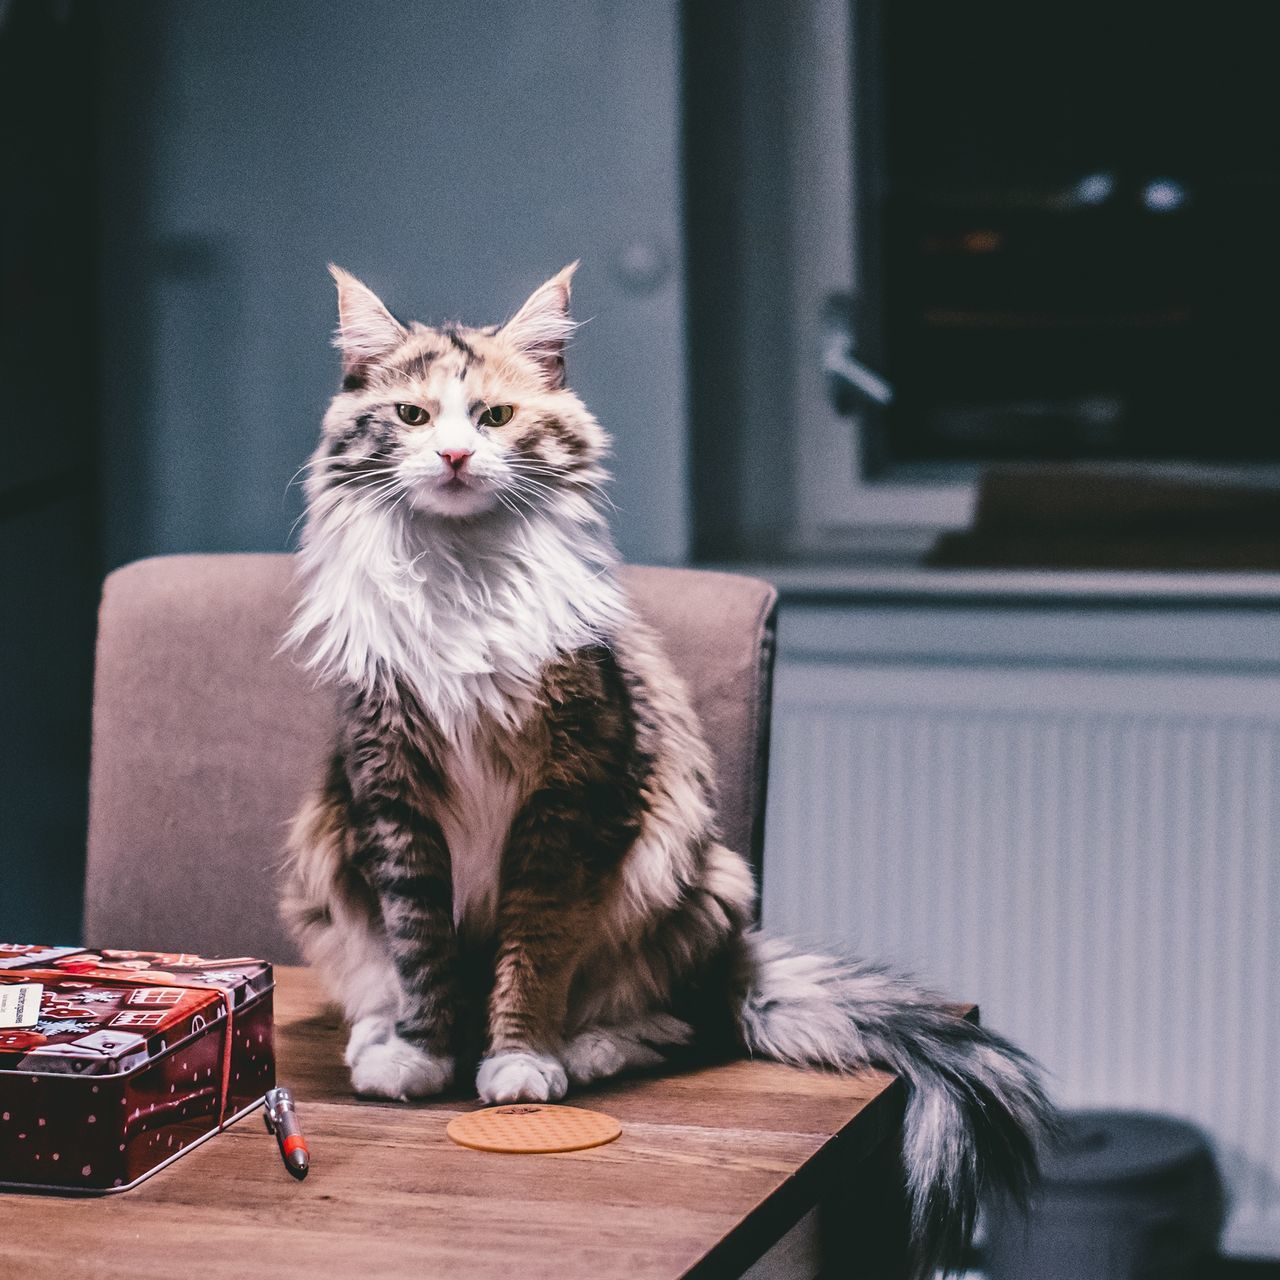 domestic cat, pets, domestic animals, one animal, animal themes, mammal, sitting, indoors, feline, looking at camera, table, no people, portrait, day, close-up